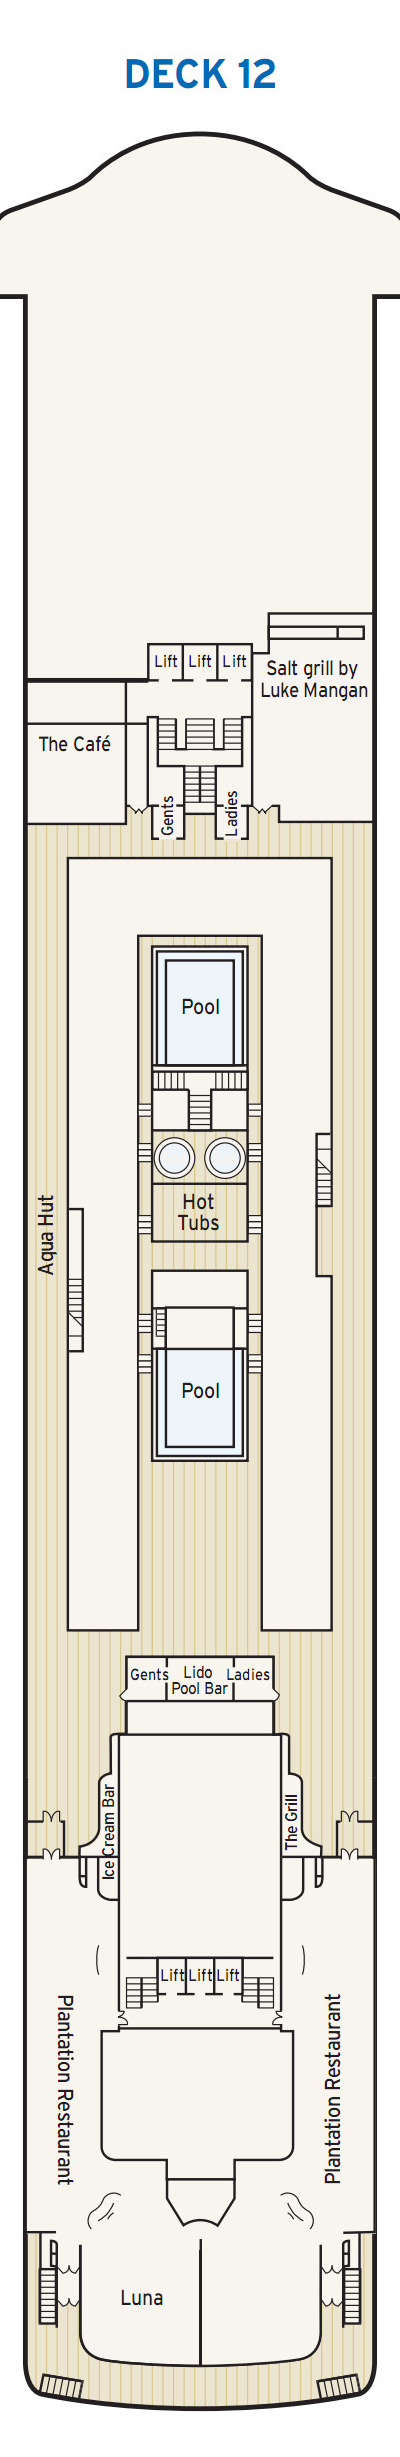 P&O - Pacific Dawn Lido Deck 12 layout